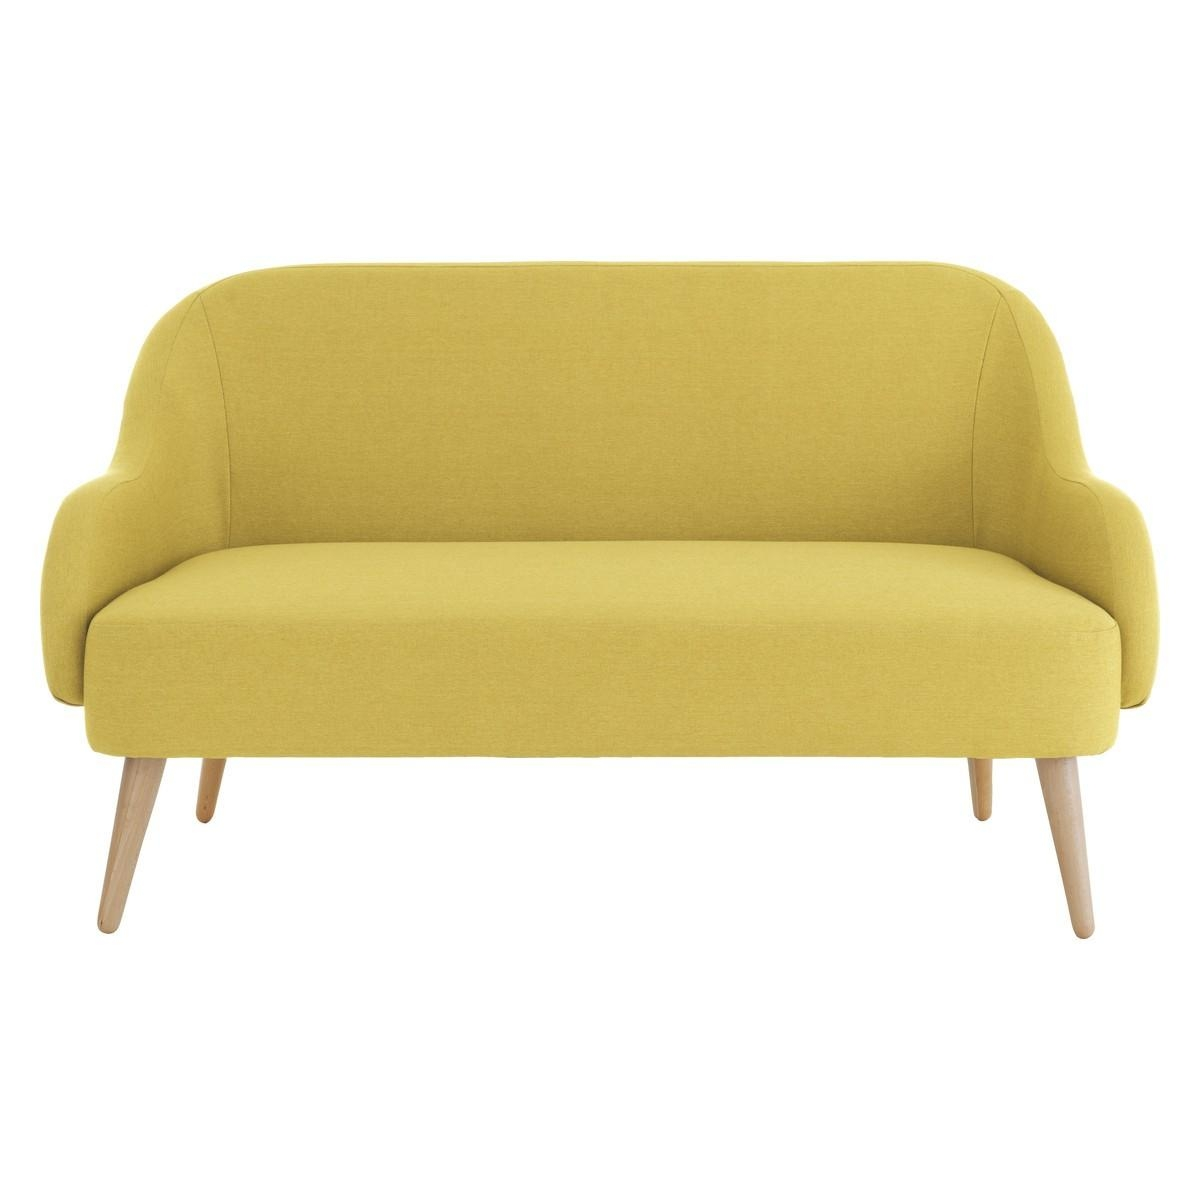 small sofa table uk come bad narrow depth sofas couch for es google search westport